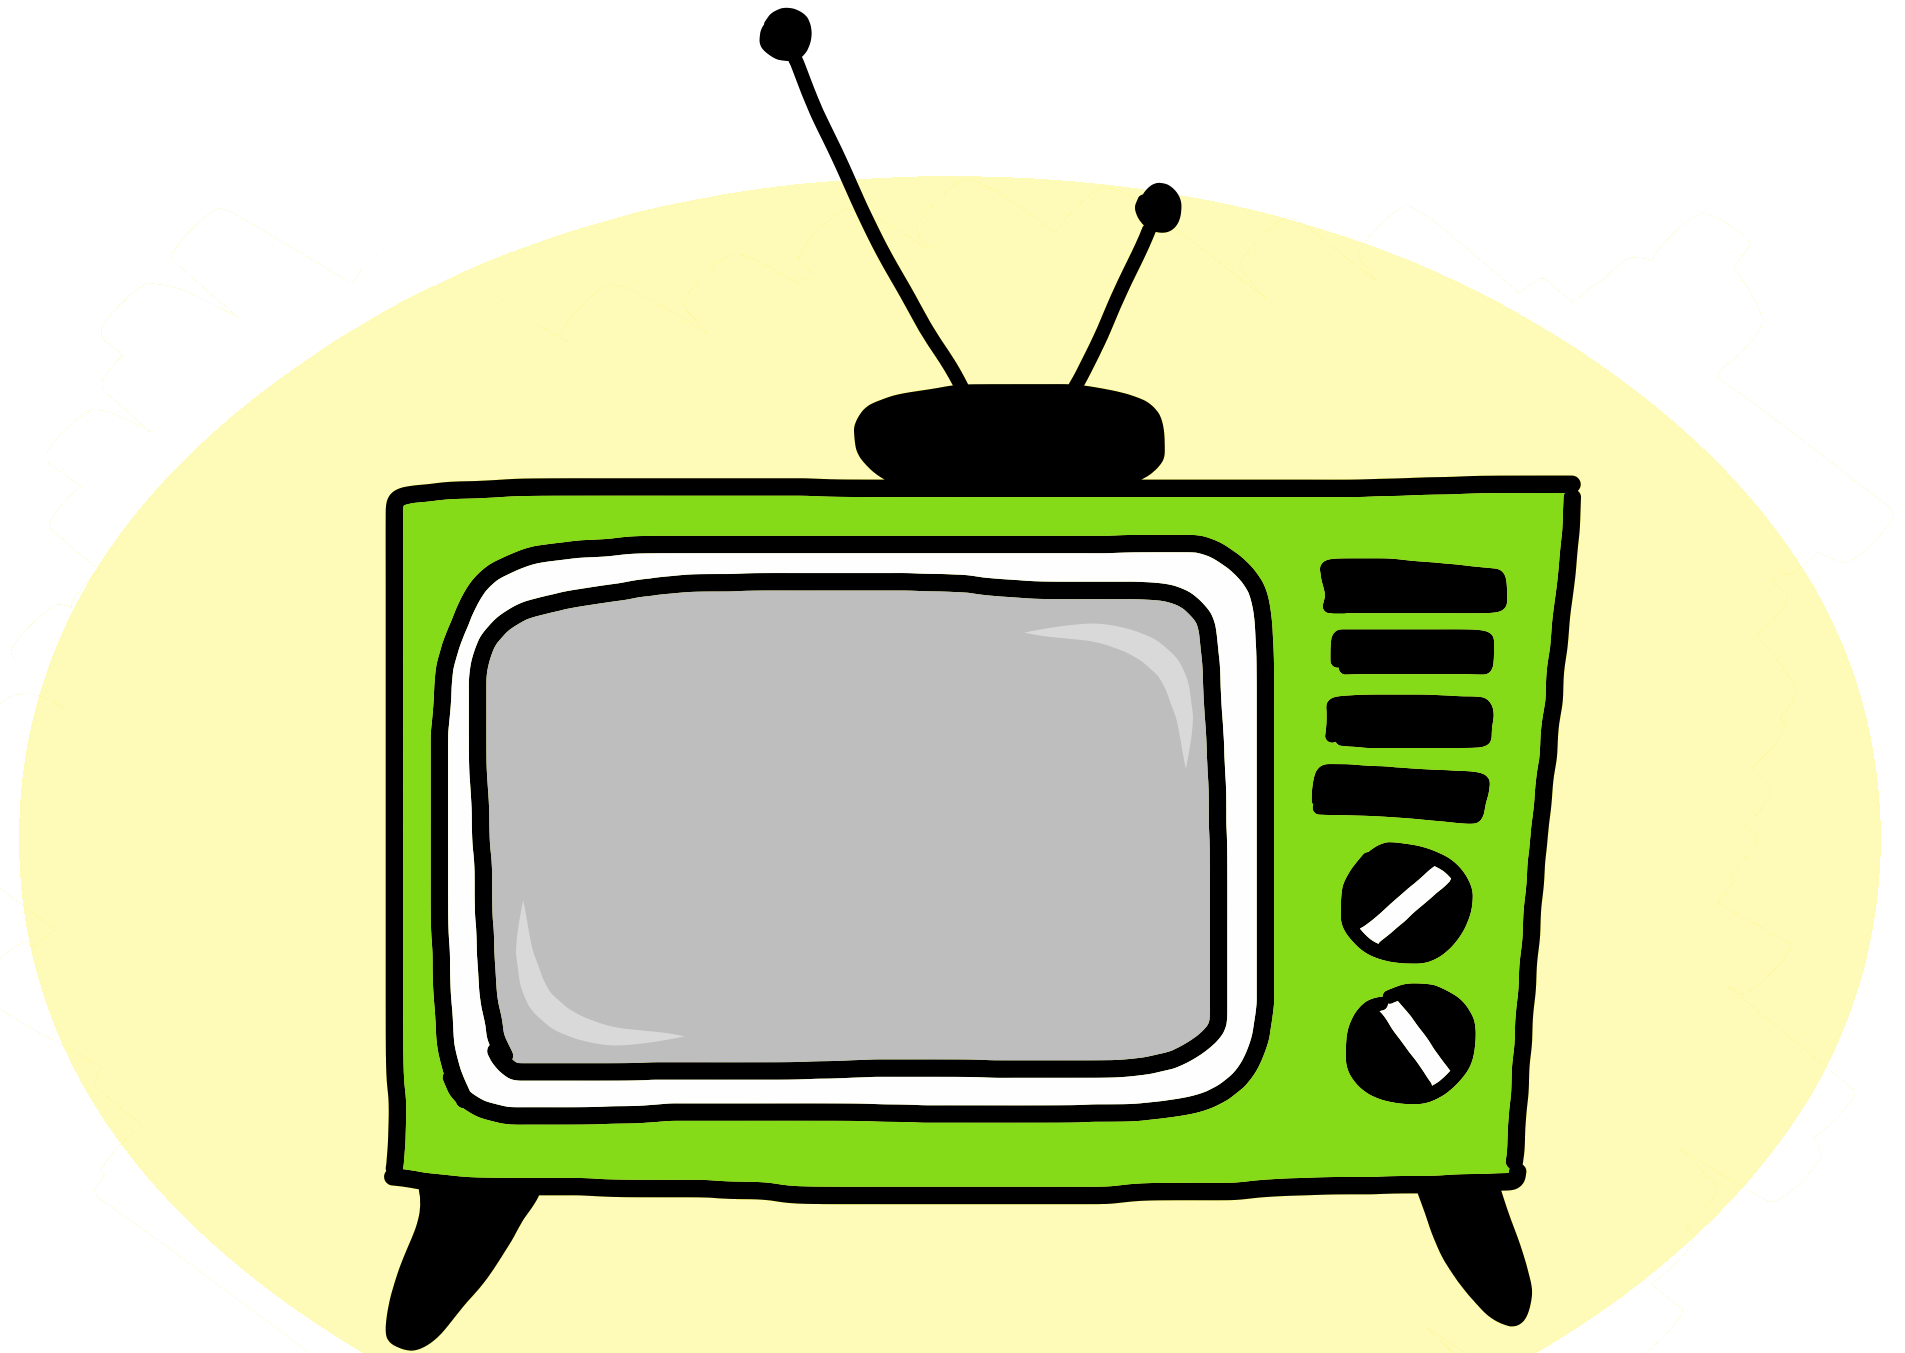 Television clipart sitcom. Tv shows to binge